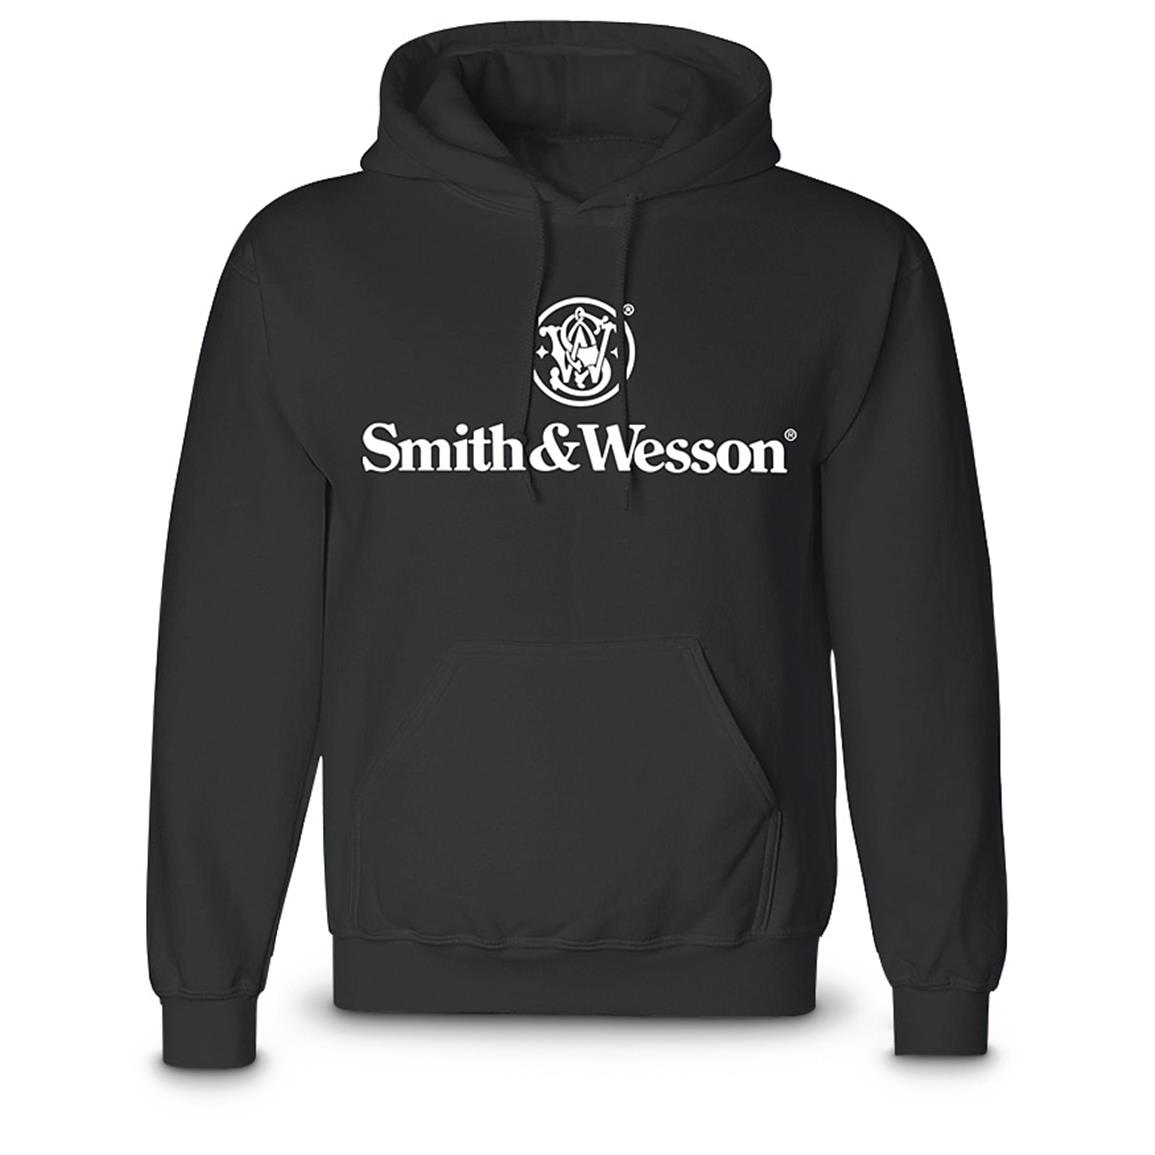 Smith & Wesson Pullover Hooded Sweatshirt, Black